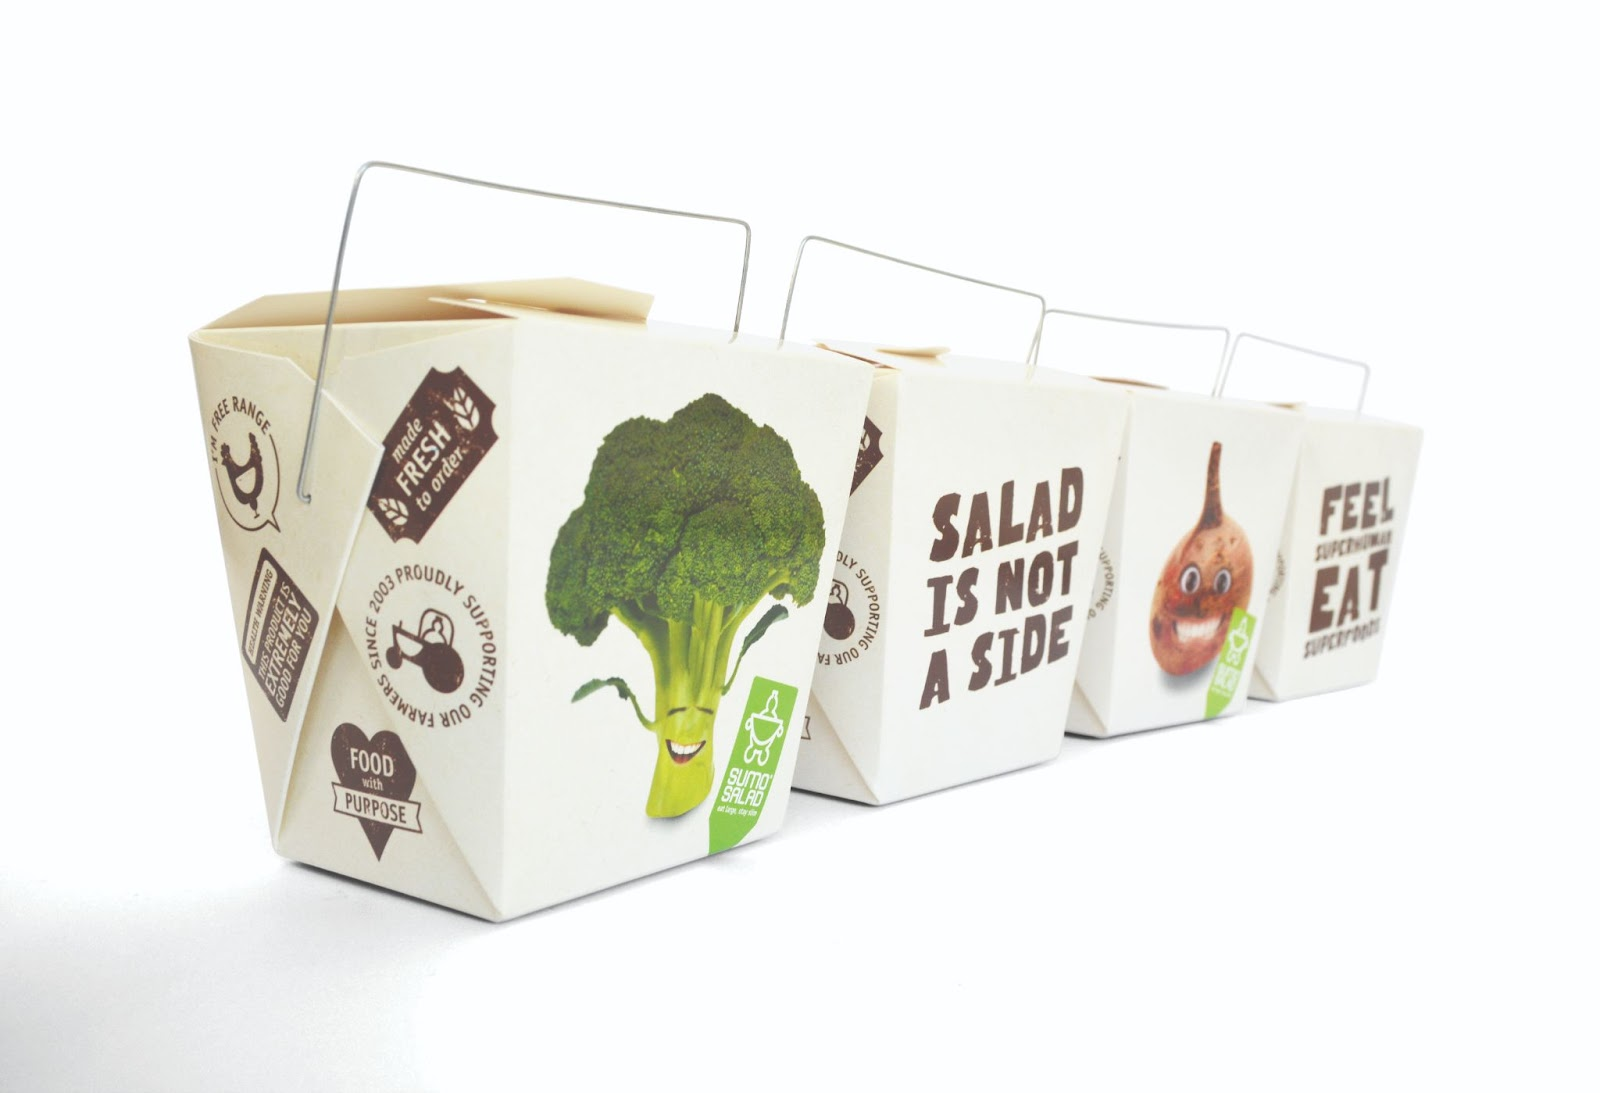 We designed packaging stamps and badges to further reinforce the key brand messages on the box